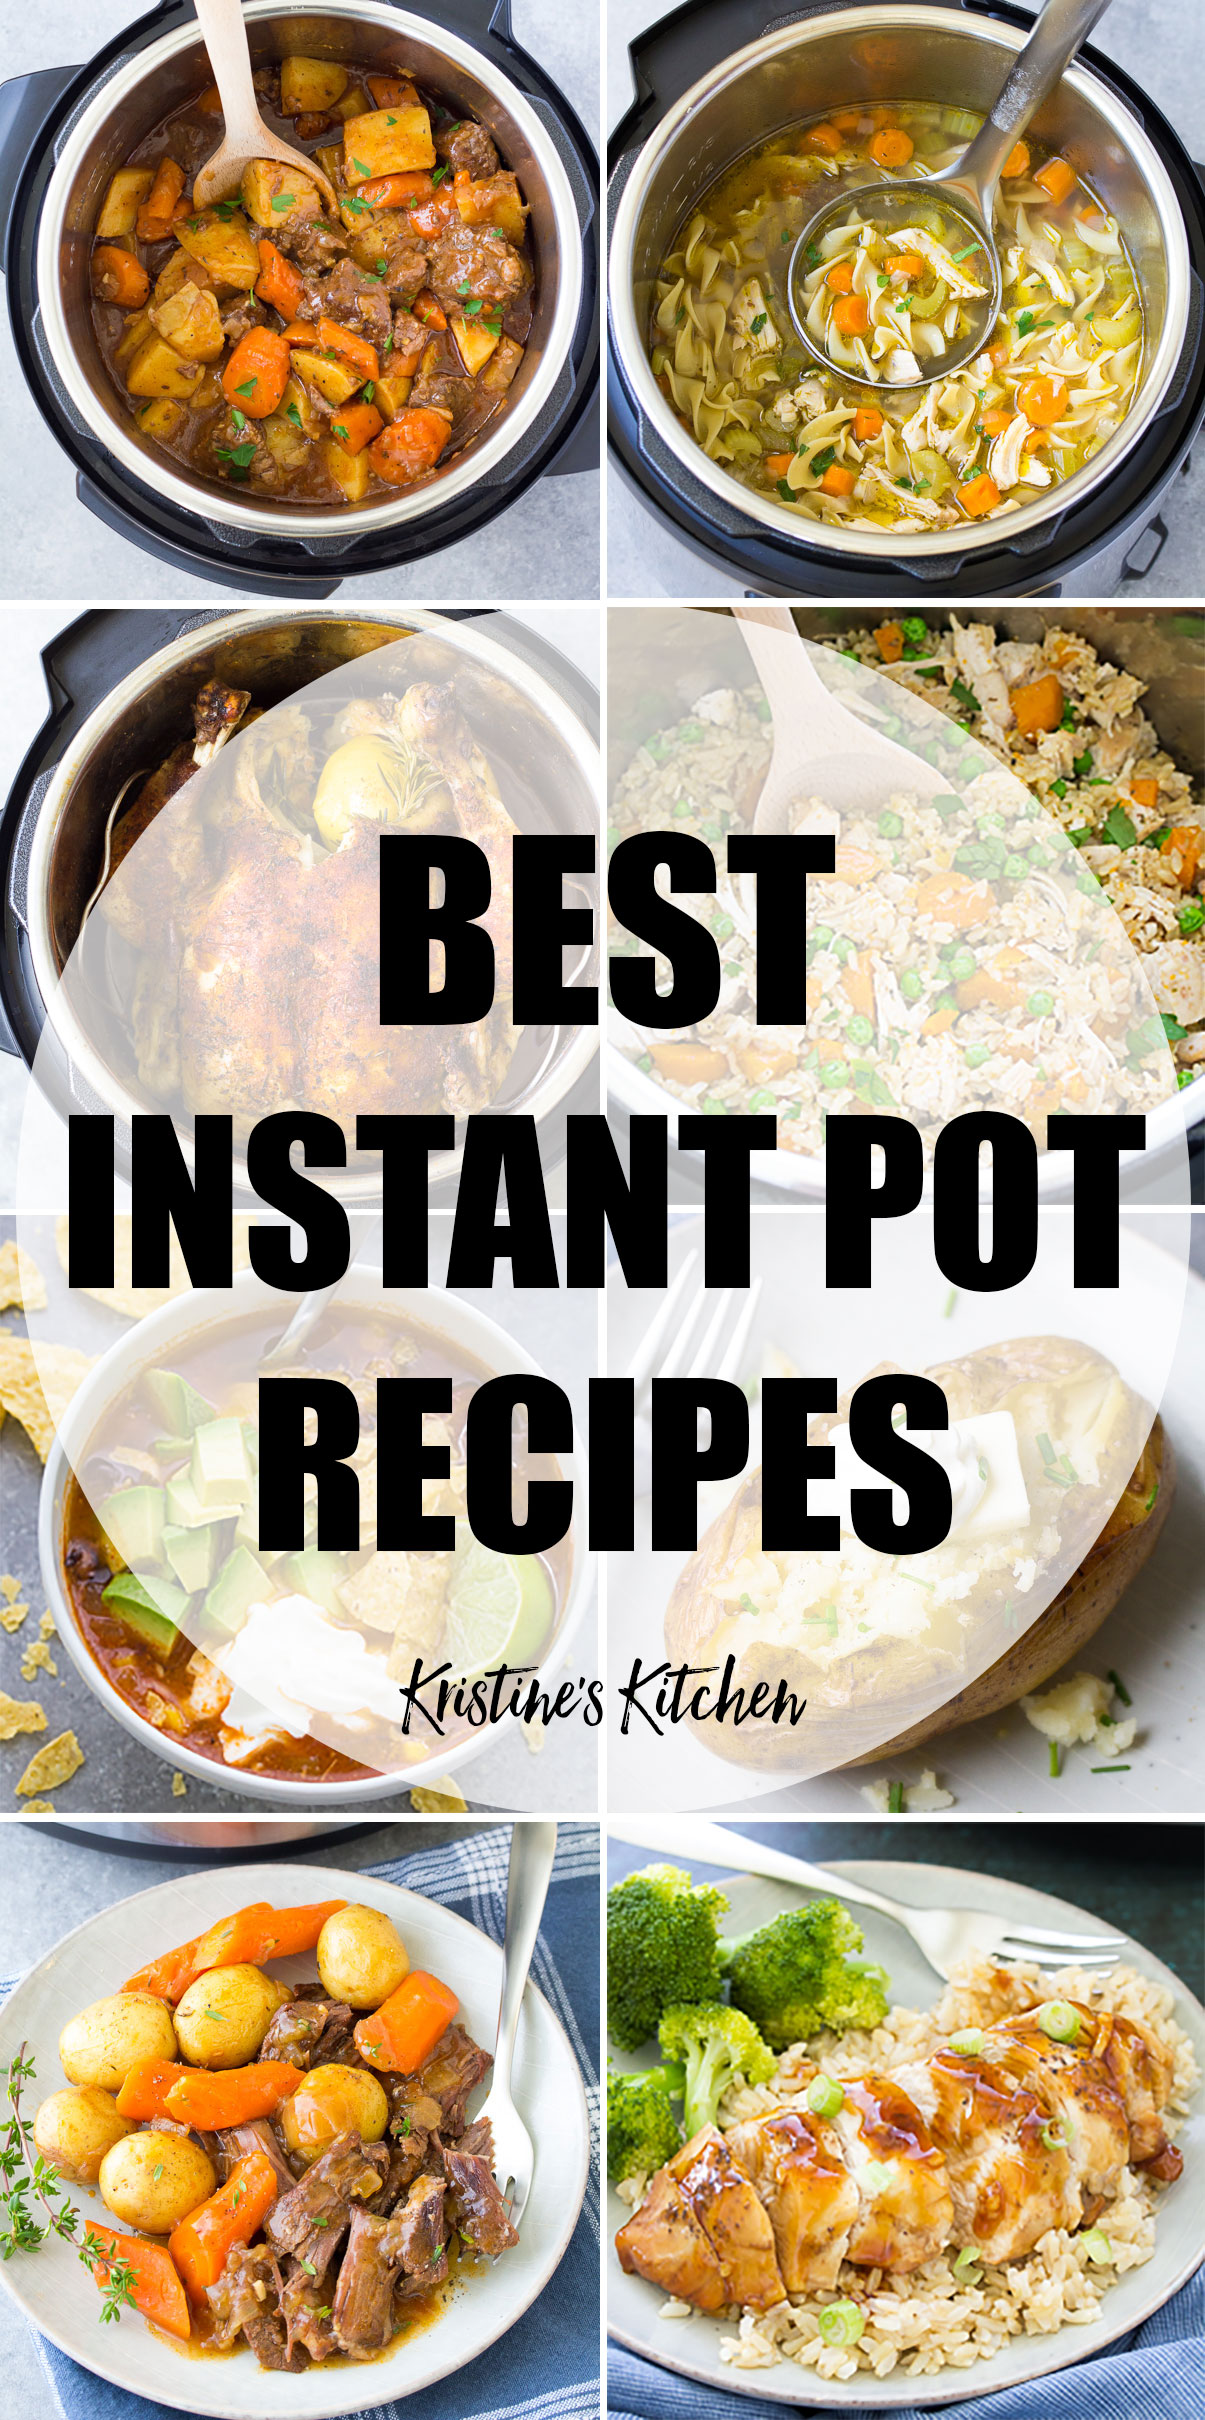 32 Best Instant Pot Recipes Easy Dinner Ideas